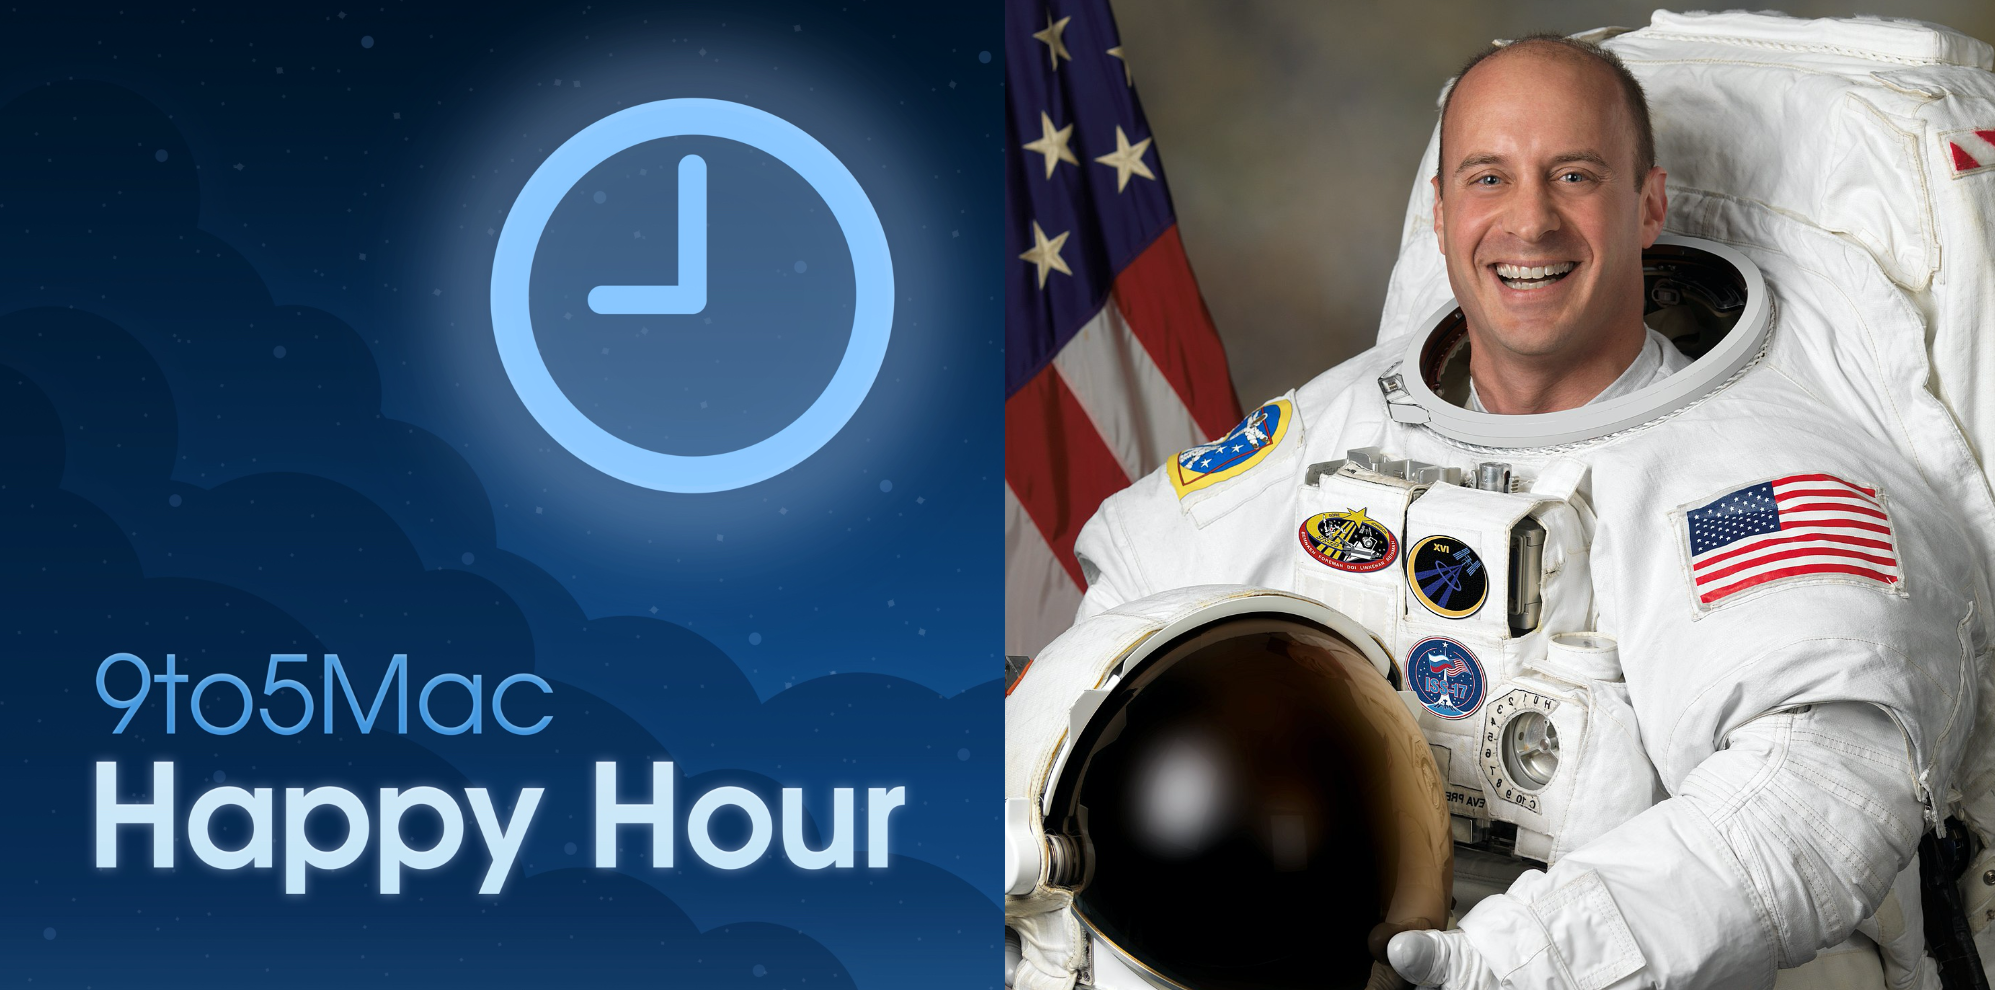 9to5Mac Happy Hour 261: An interview with Astronaut Reisman, 'For All Mankind' consultant for Apple TV+